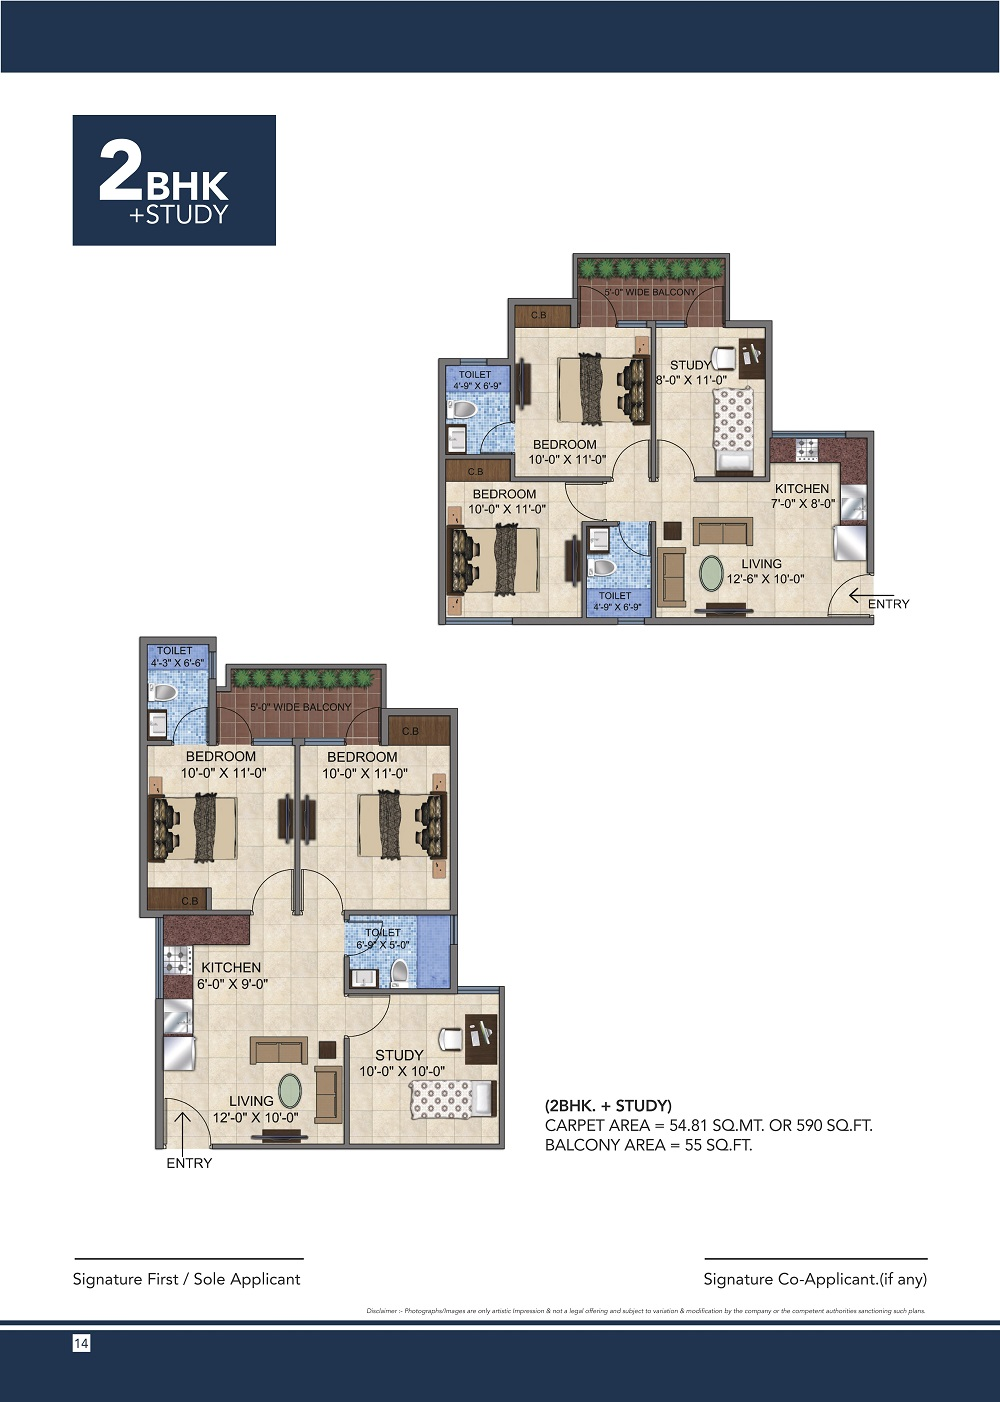 2BHK +Study Floor Plan